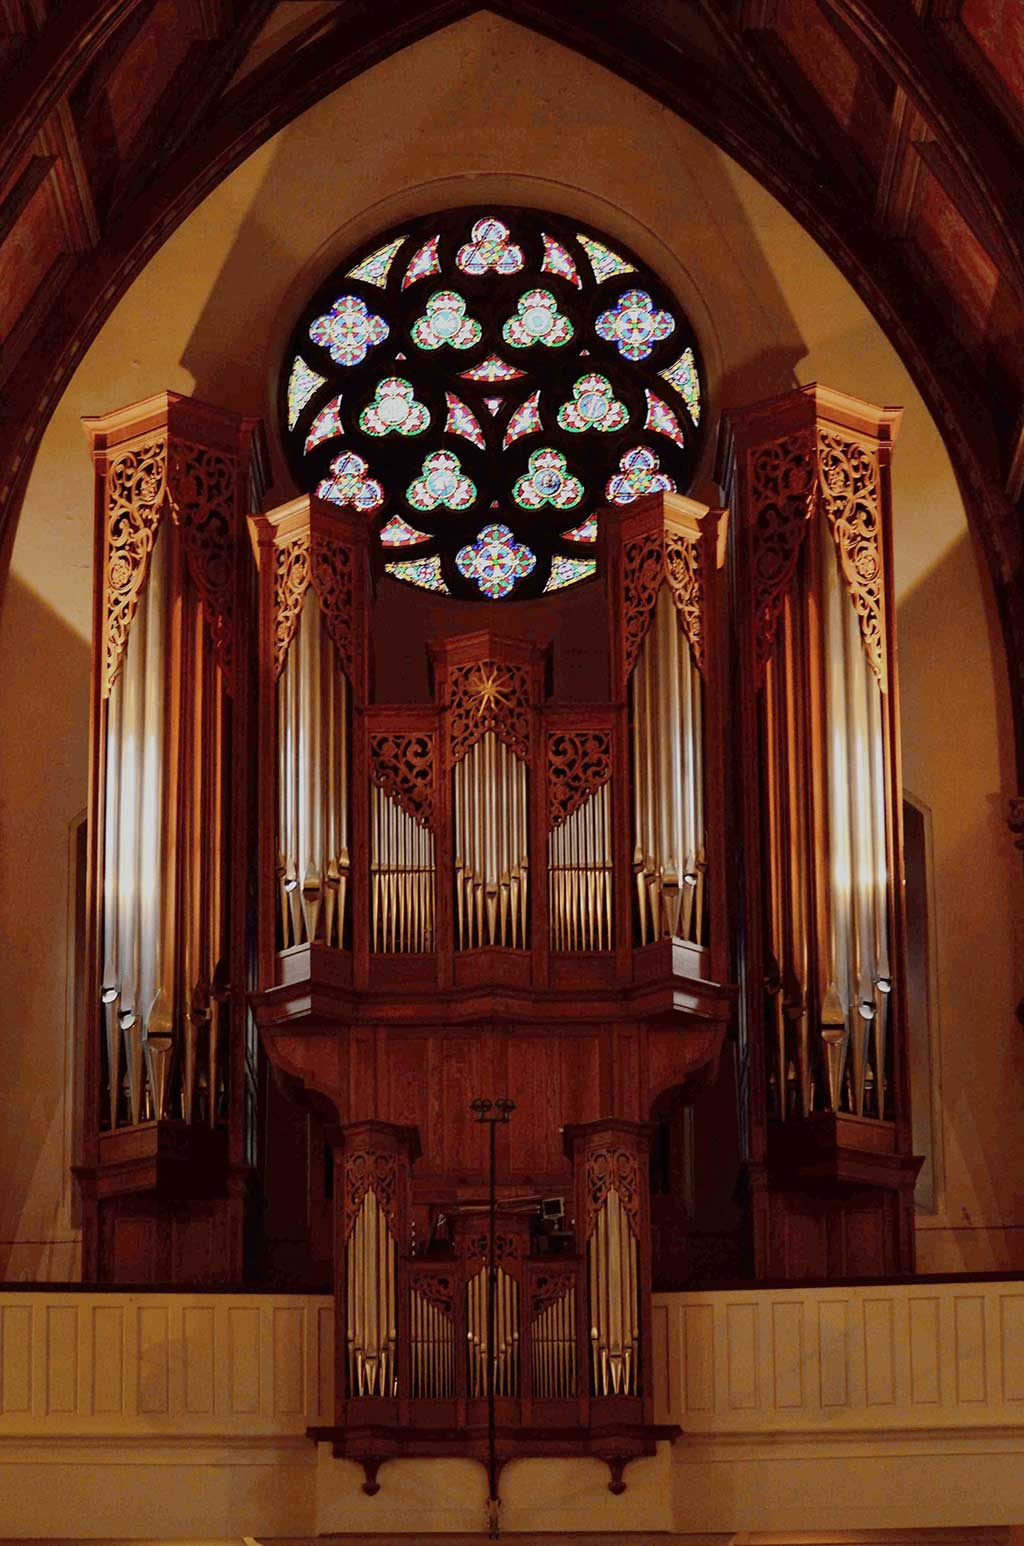 The Karl Wilhelm Organ at Christ Church Cathedral. (Photo: courtoisie)